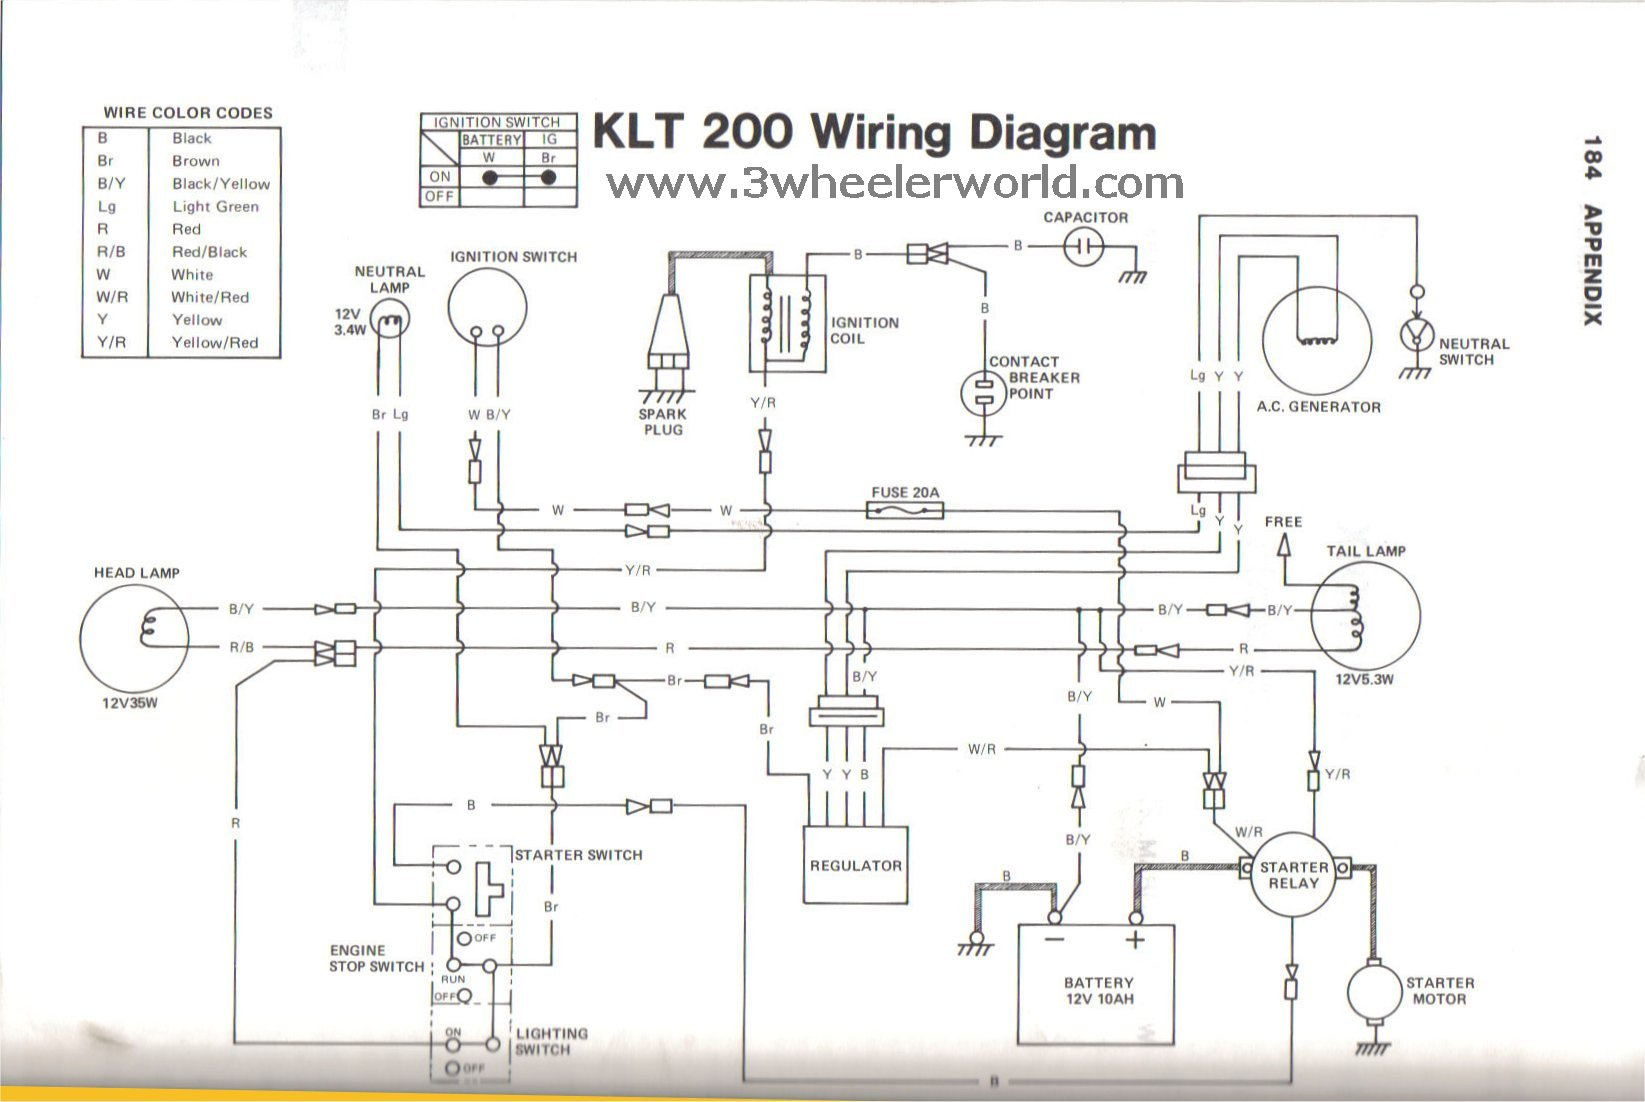 KLT200WiringDiagram1 3 wheeler world tech help kawasaki wiring diagrams  at bakdesigns.co